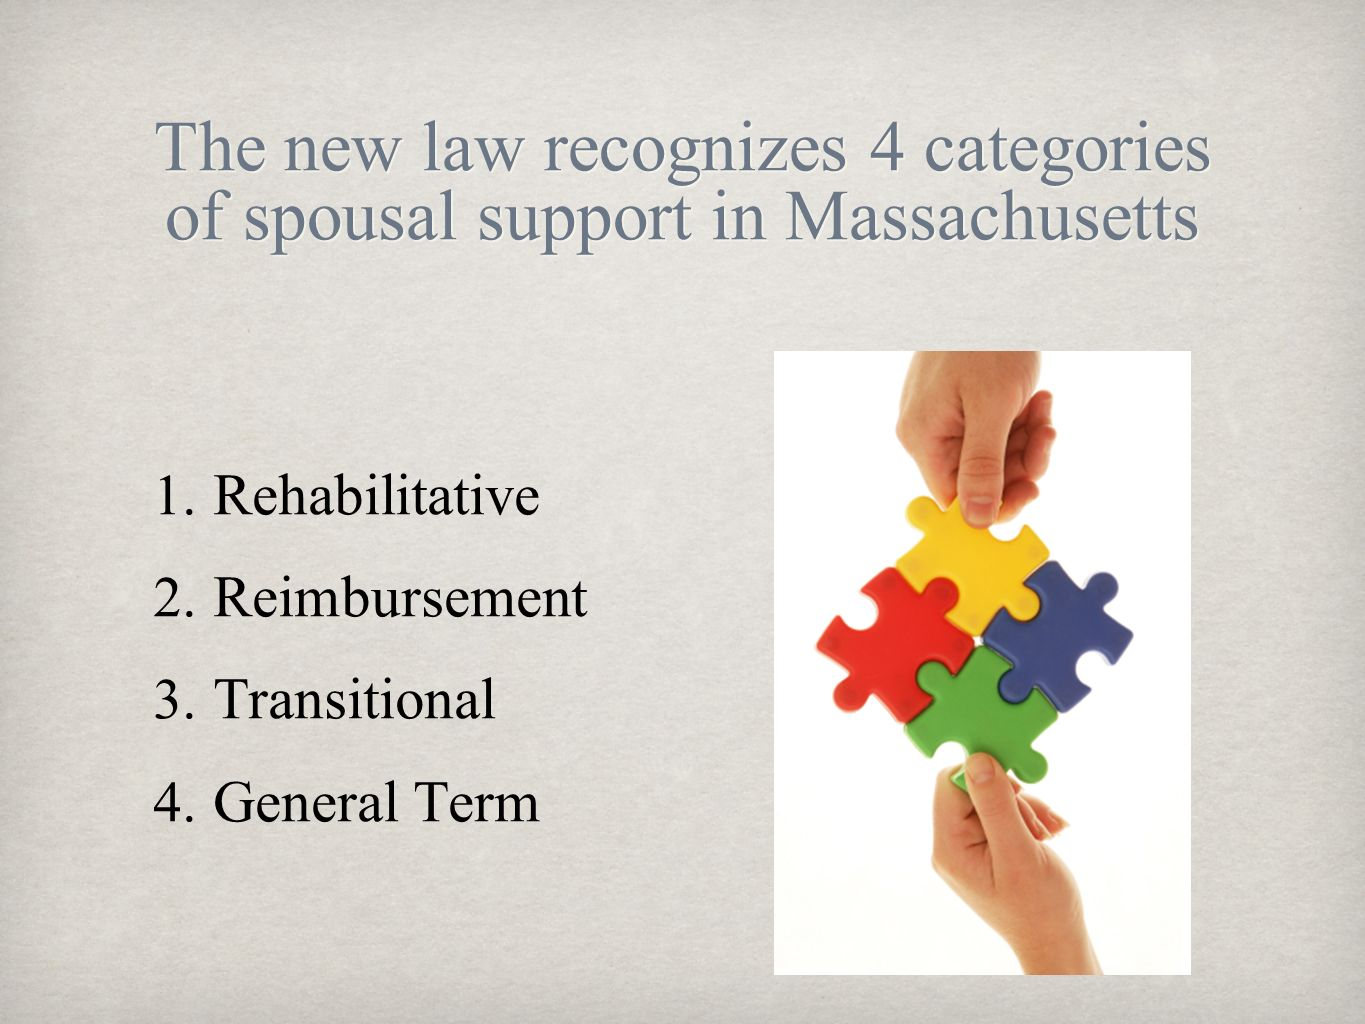 The new law recognizes 4 categories of spousal support in Massachusetts 1. Rehabilitative 2. Reimbursement 3. Transitional 4. General Term